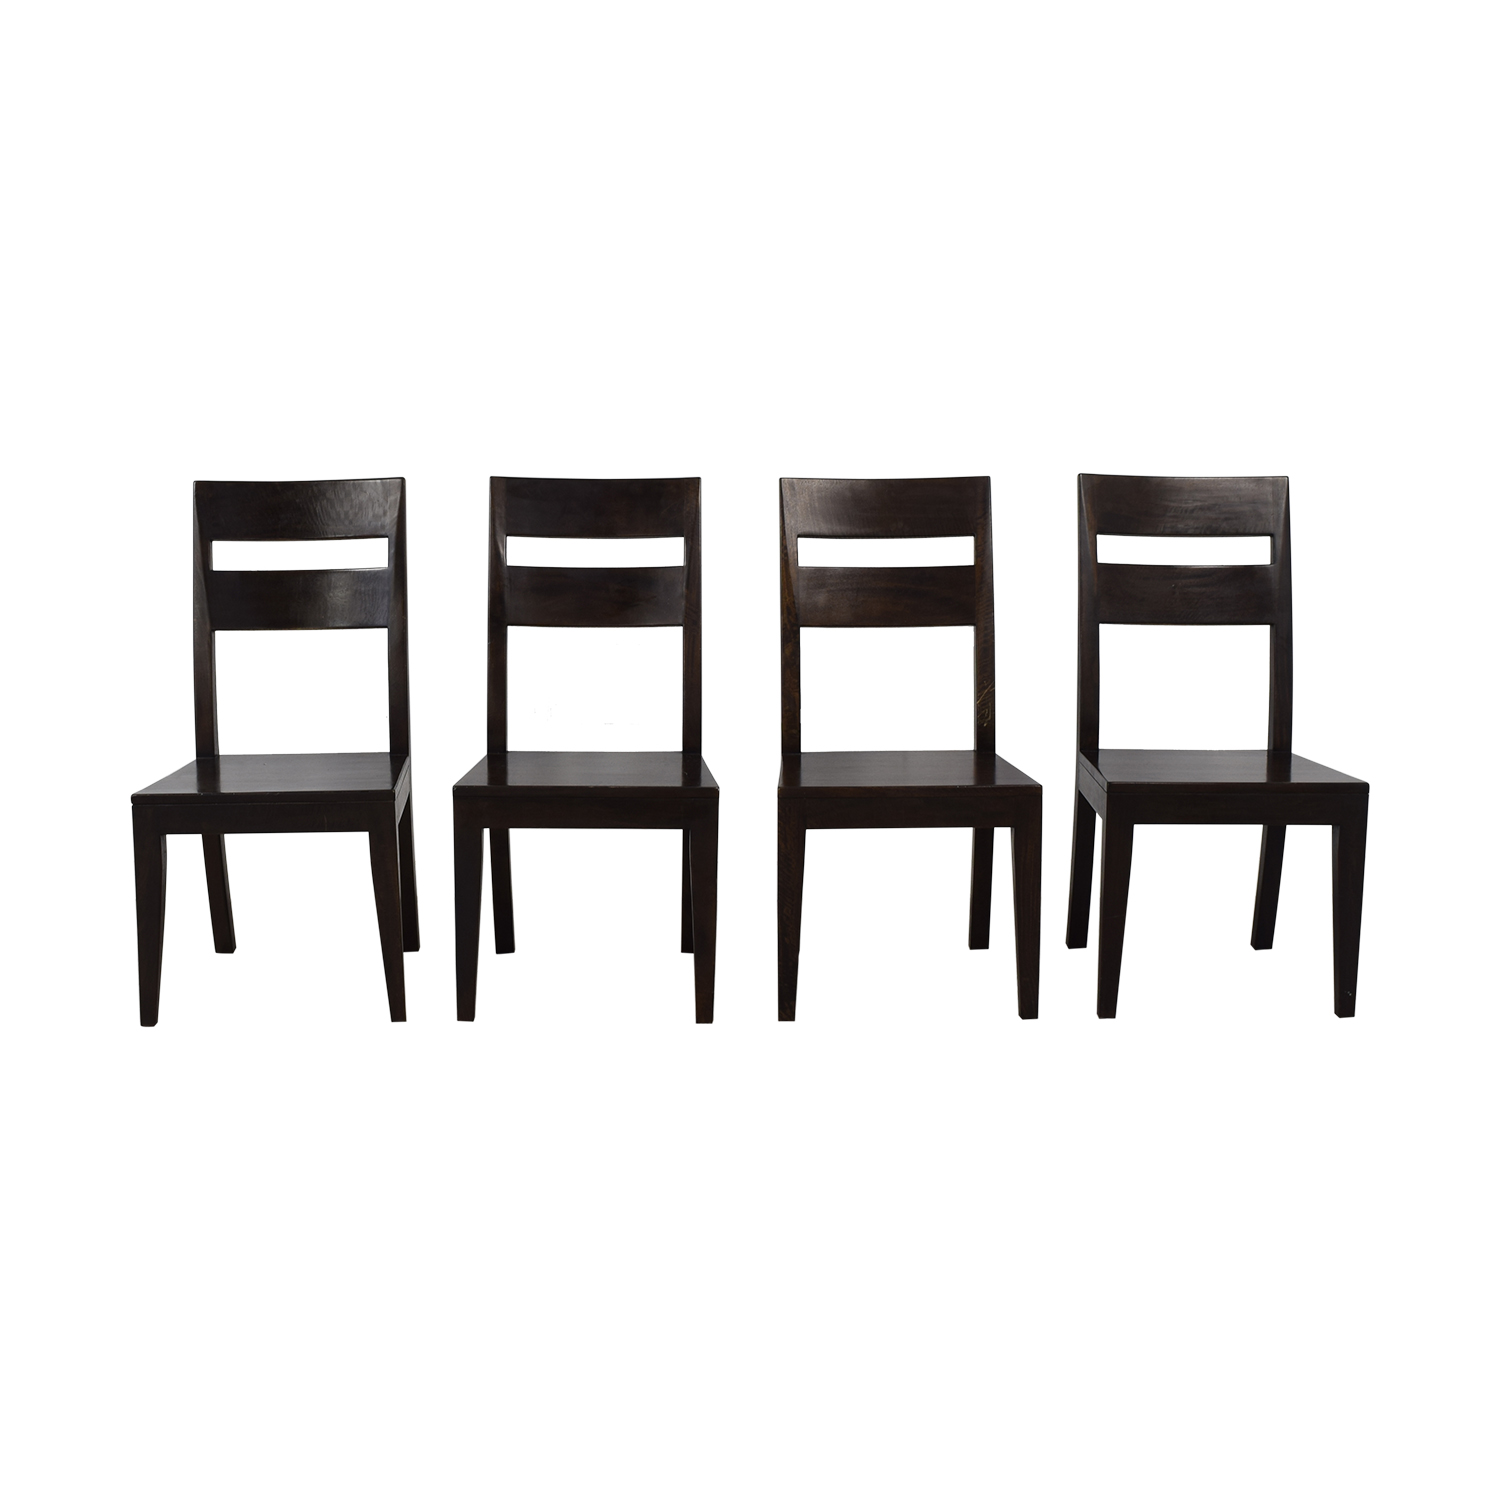 Crate & Barrel Crate & Barrel Basque Dining Chairs nj